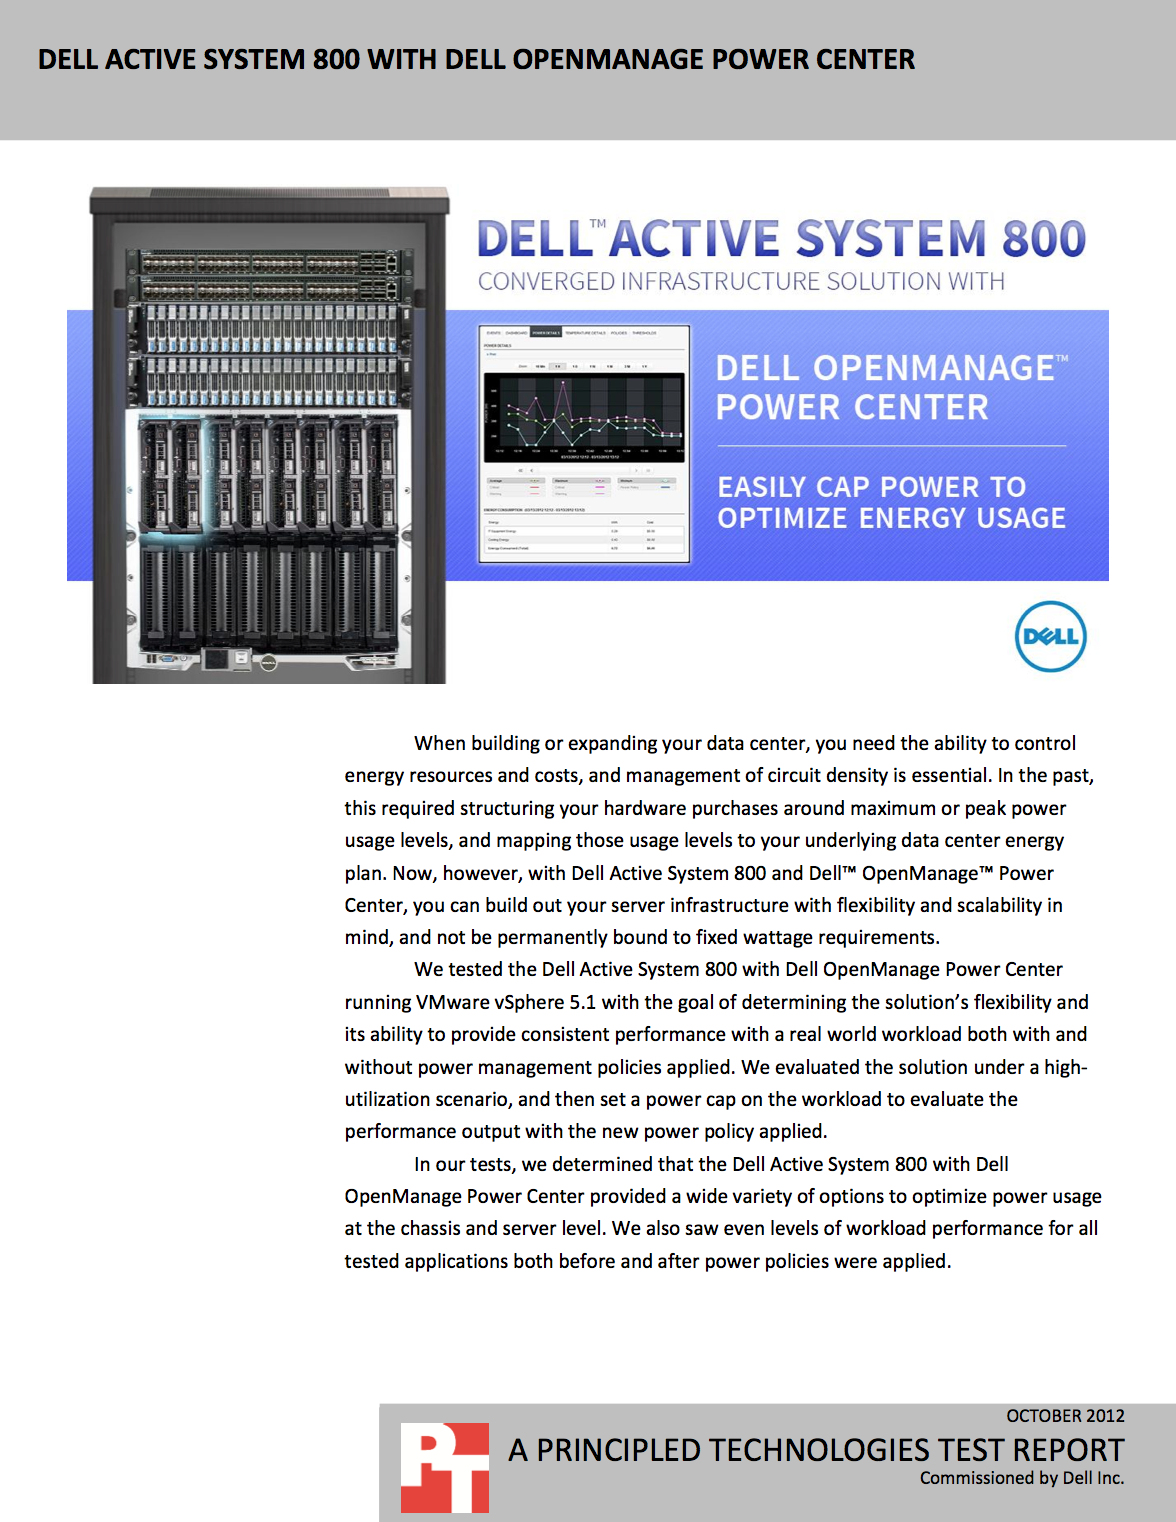 Dell Active System 800 With Dell Openmanage Power Center Http Facts Pt 14m5eup Energy Usage Energy Resources Optimization